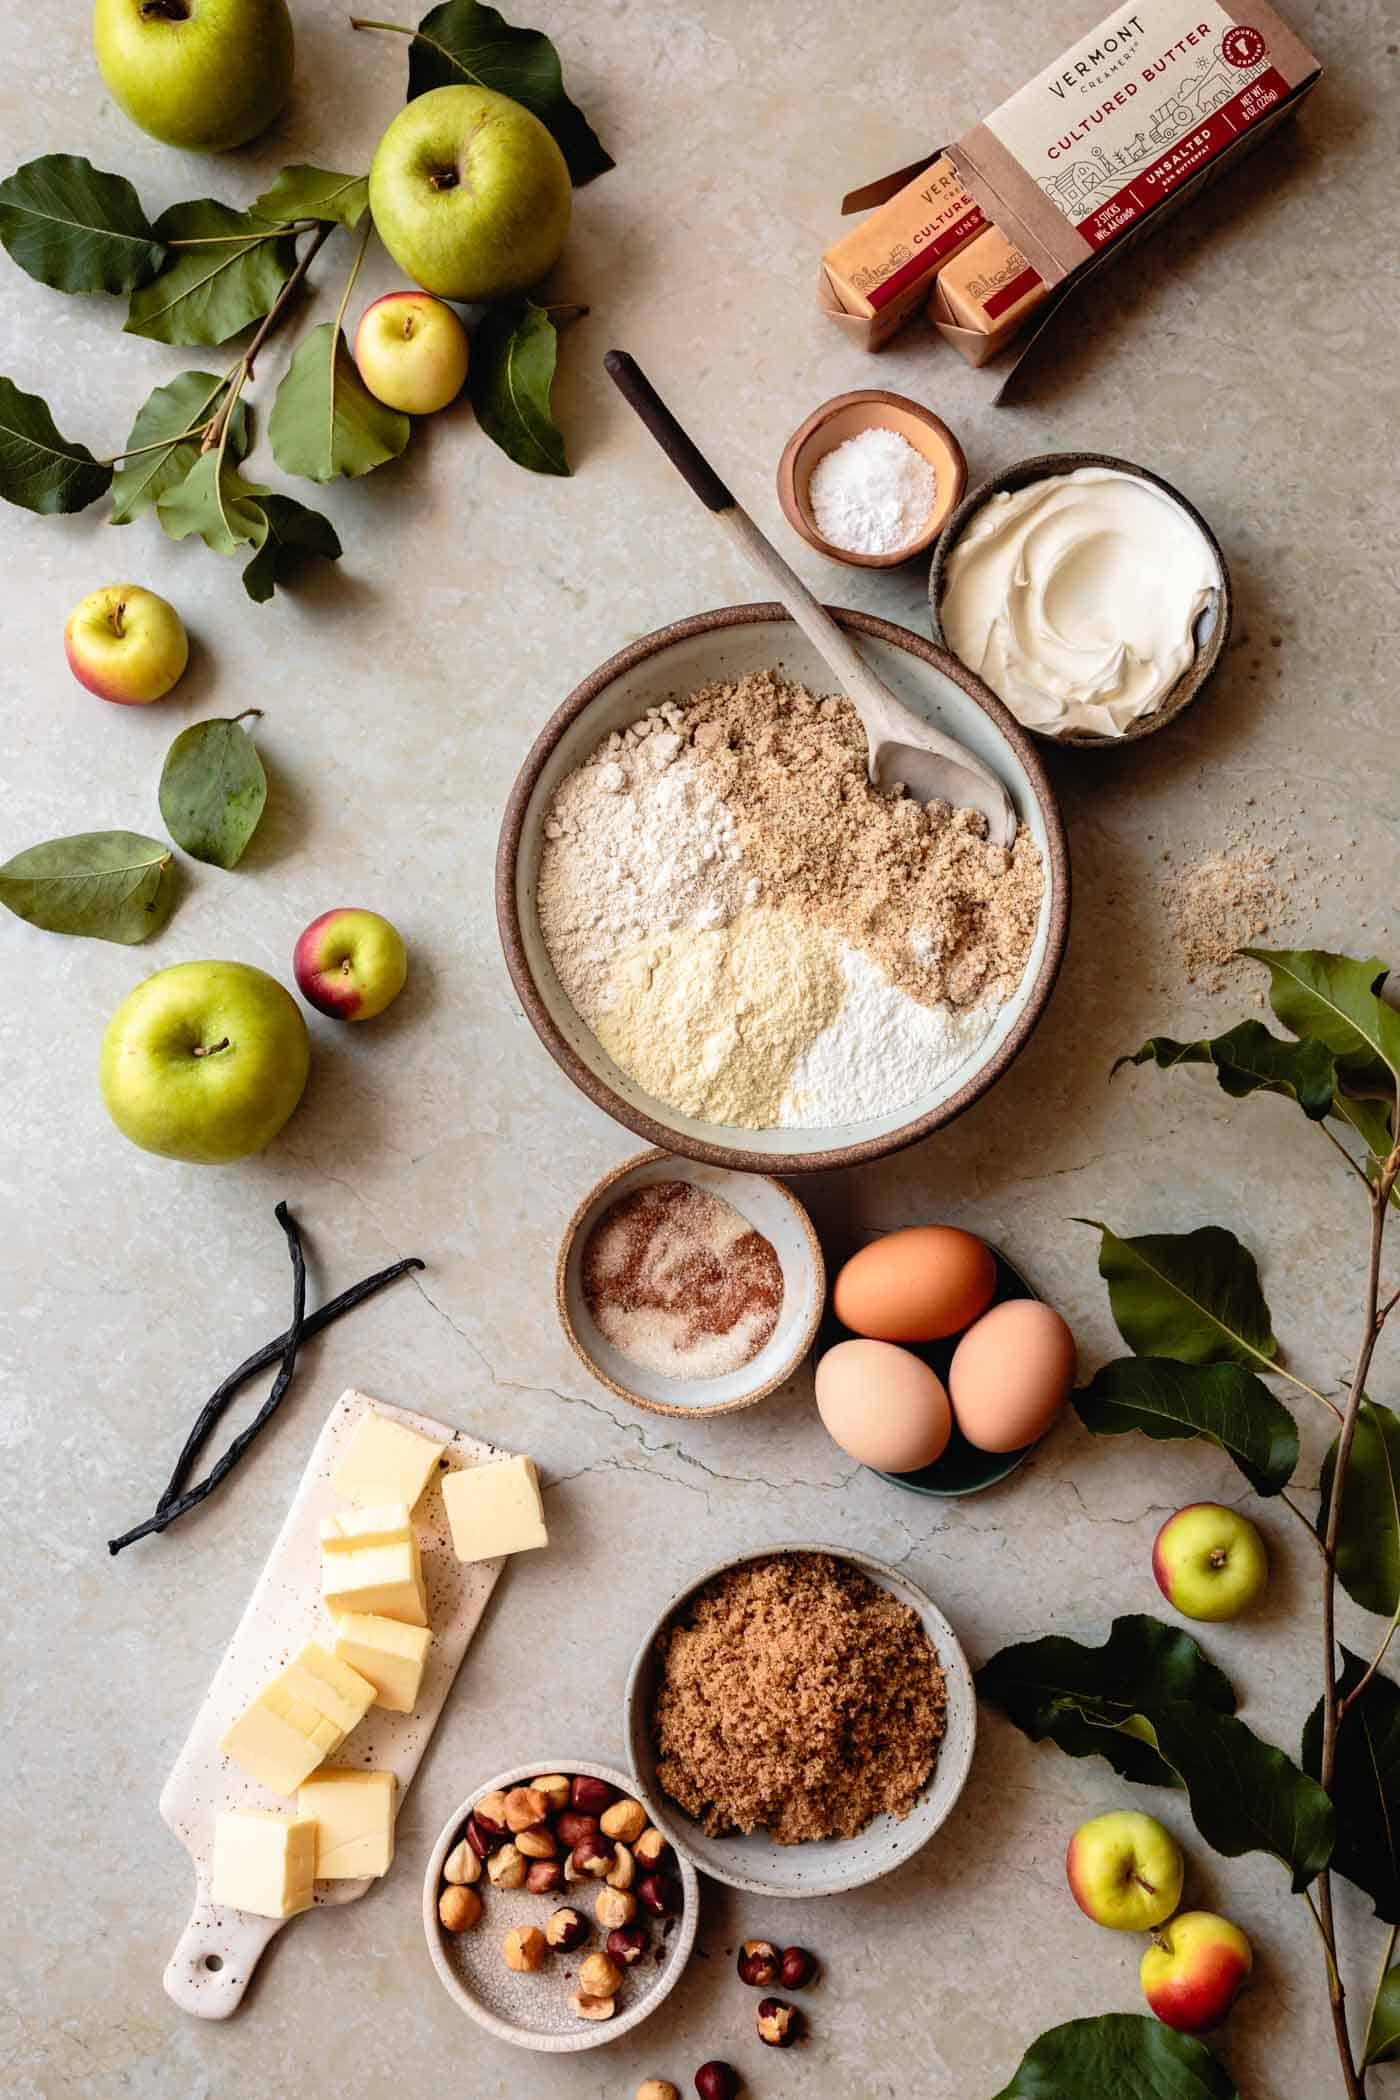 Ingredients for gluten-free fresh apple cake recipe